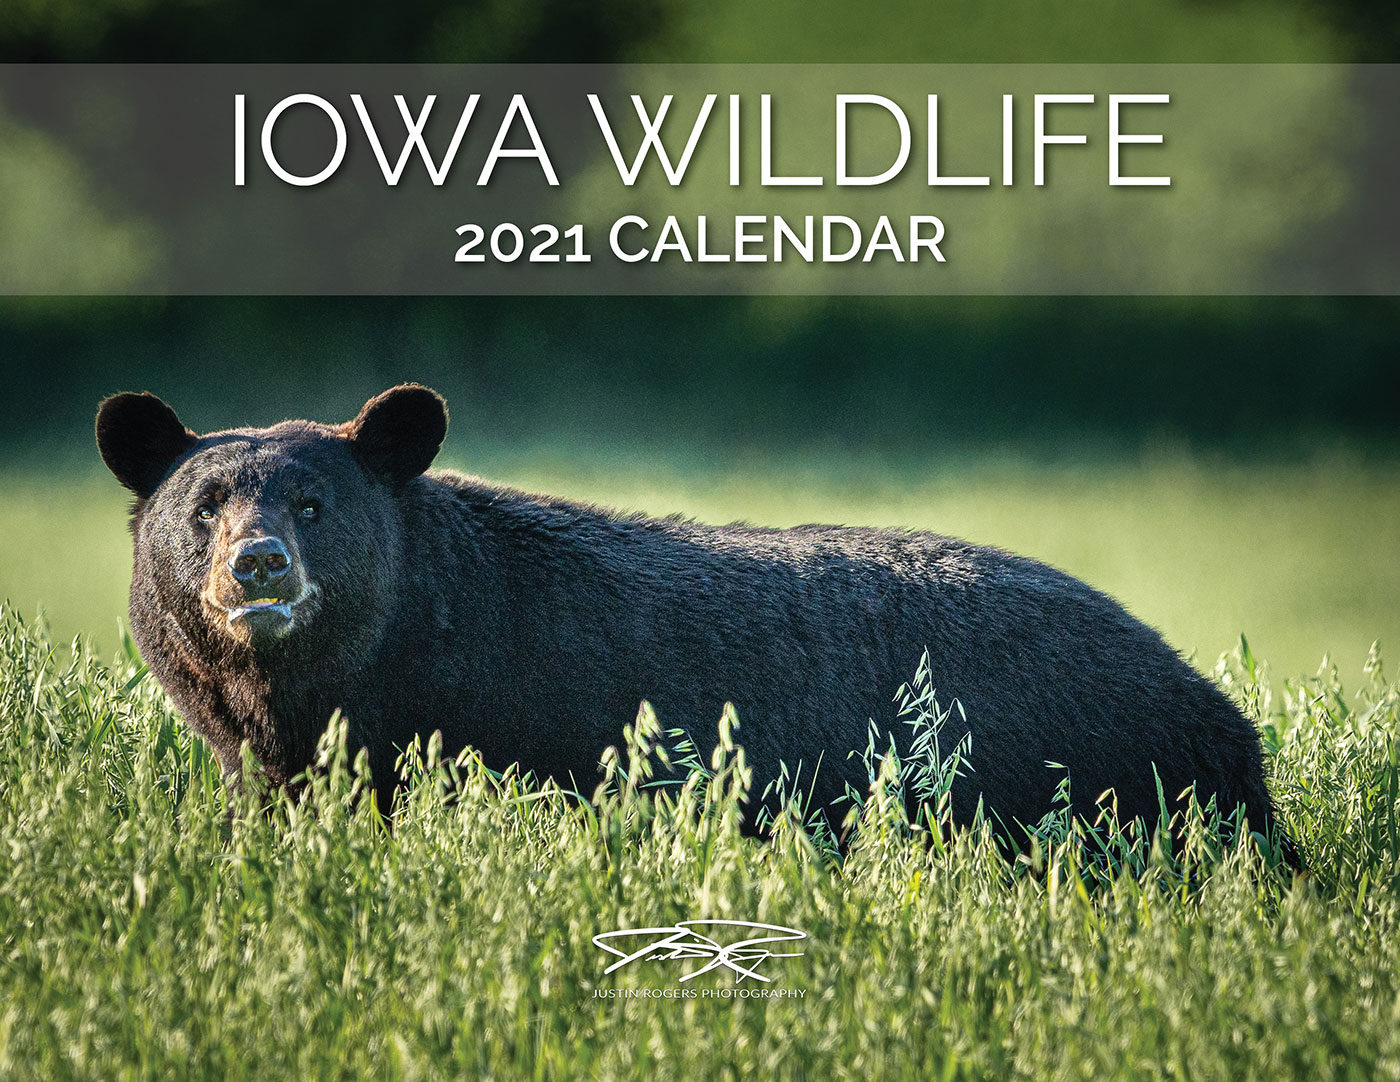 2021 Calendar: Iowa Wildlife